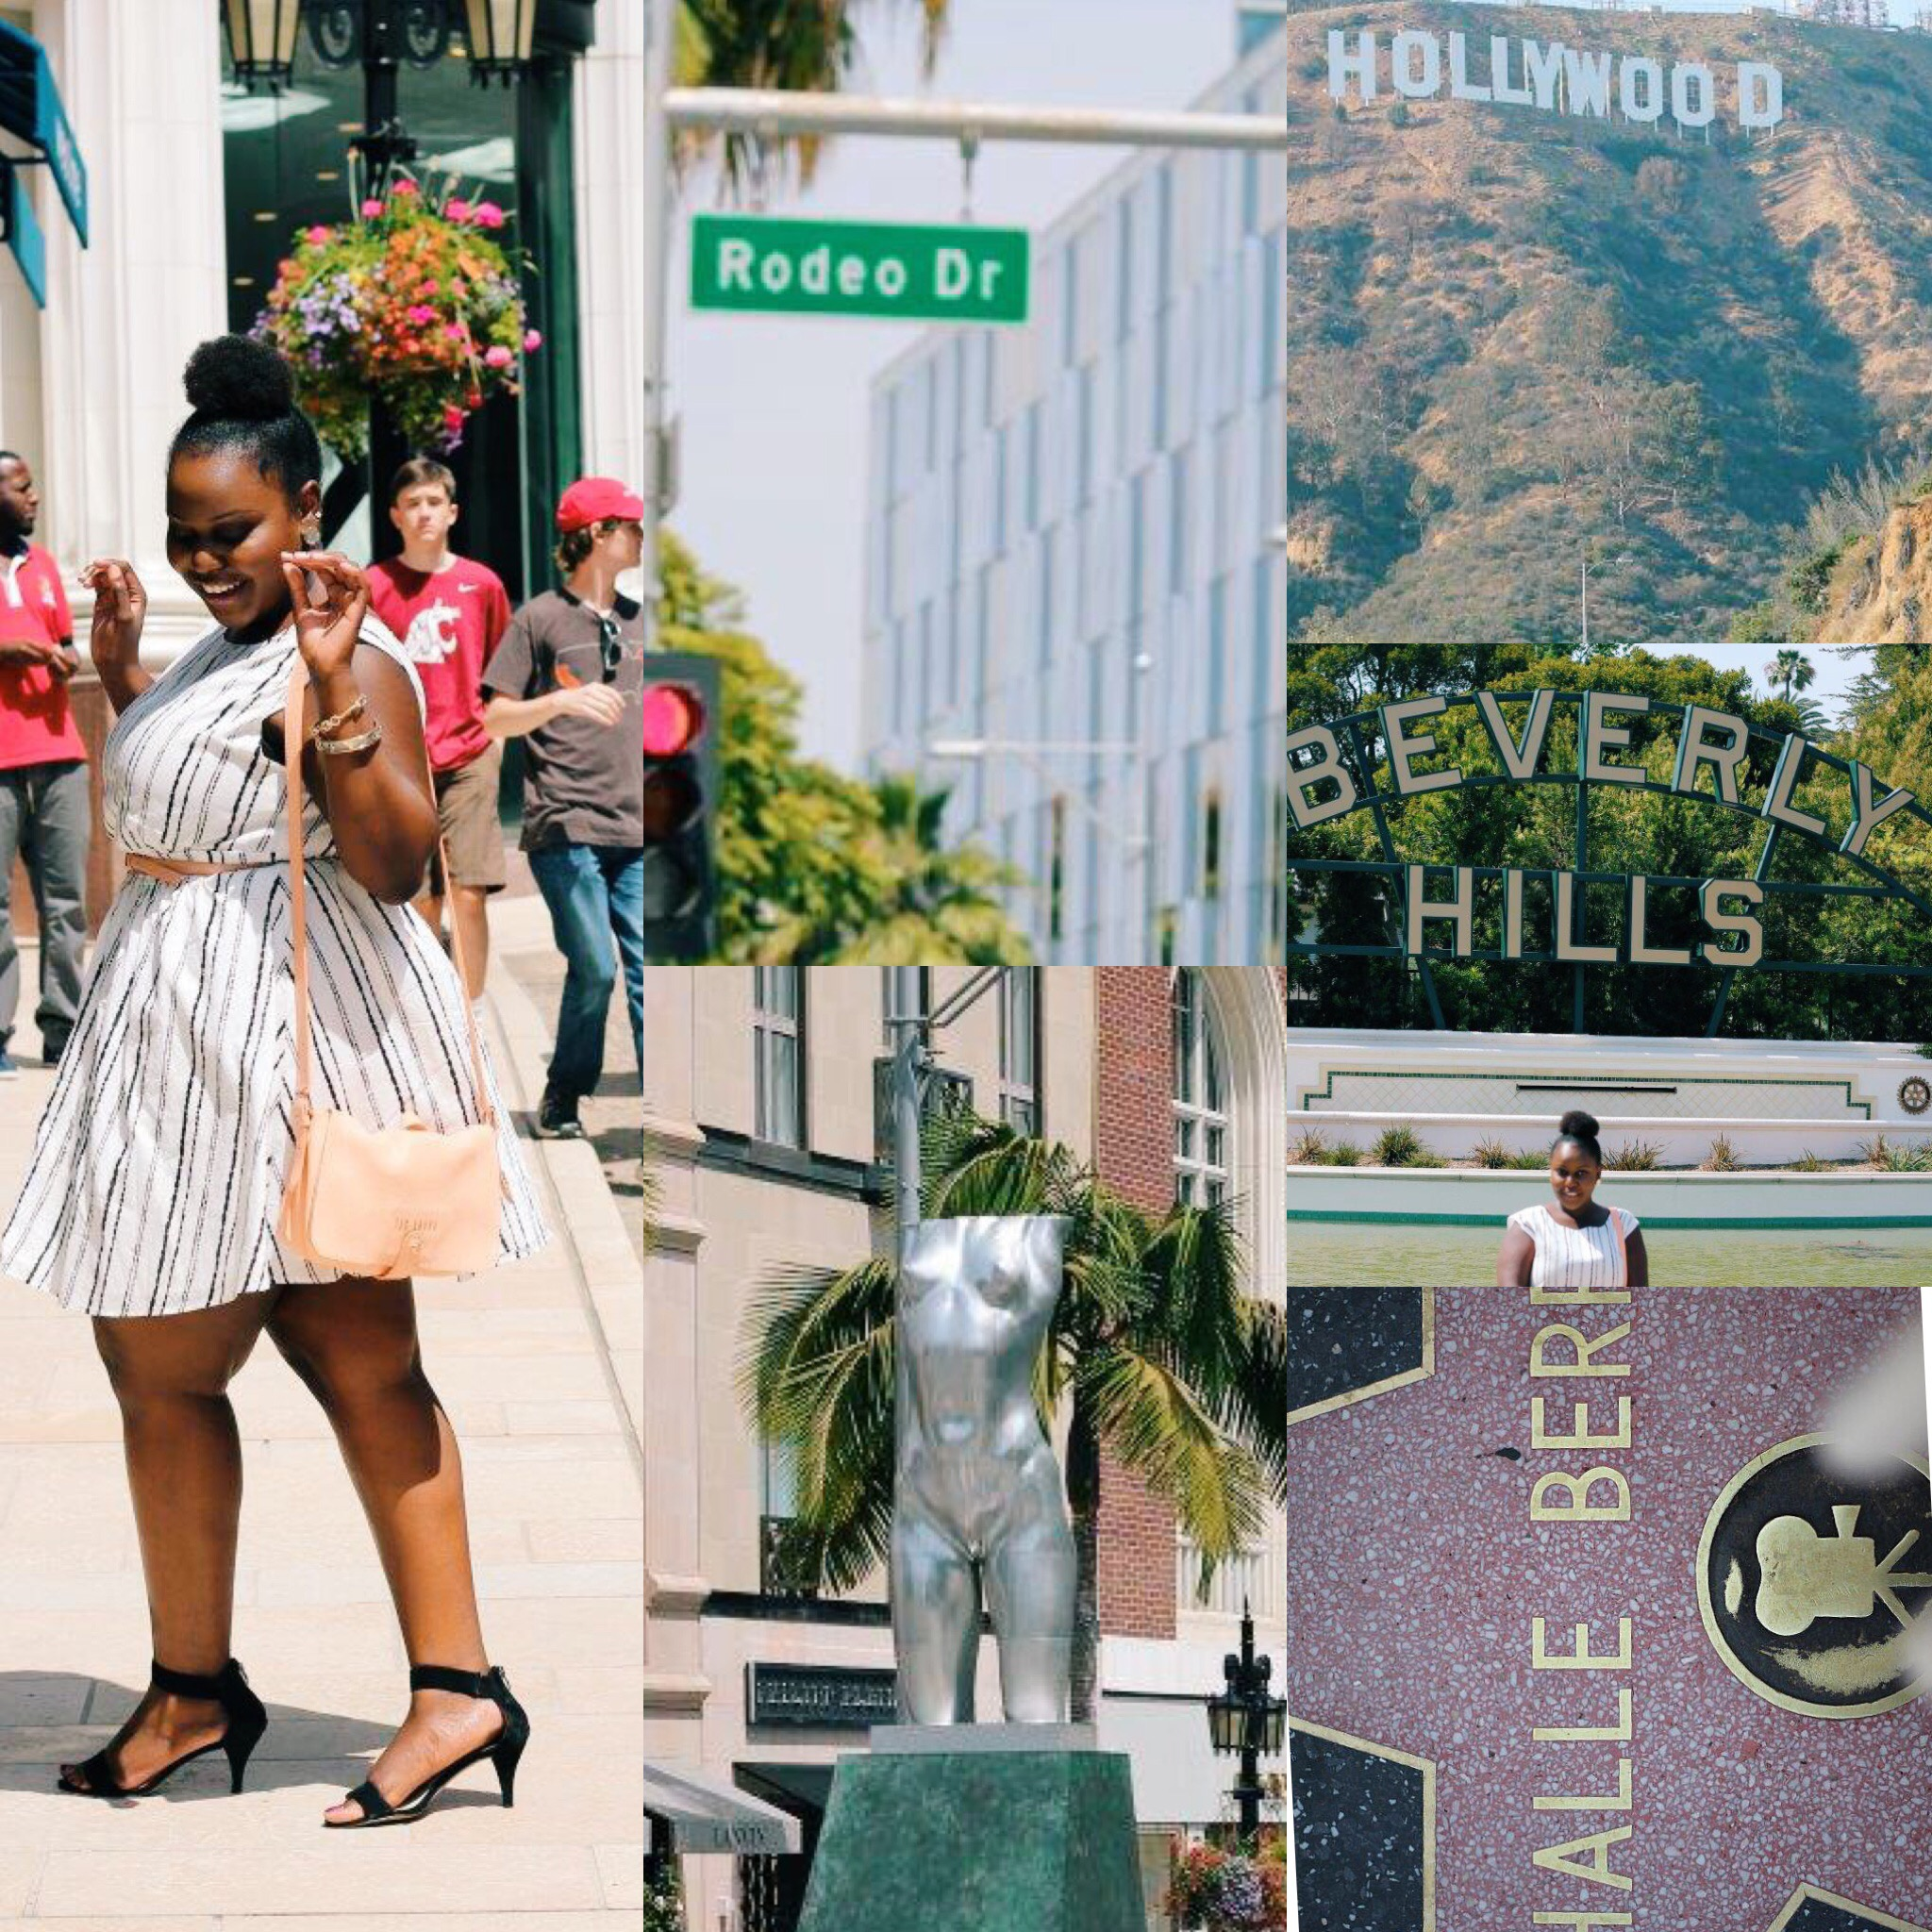 Los Angeles, beverly hills, Hollywood, carlifornia